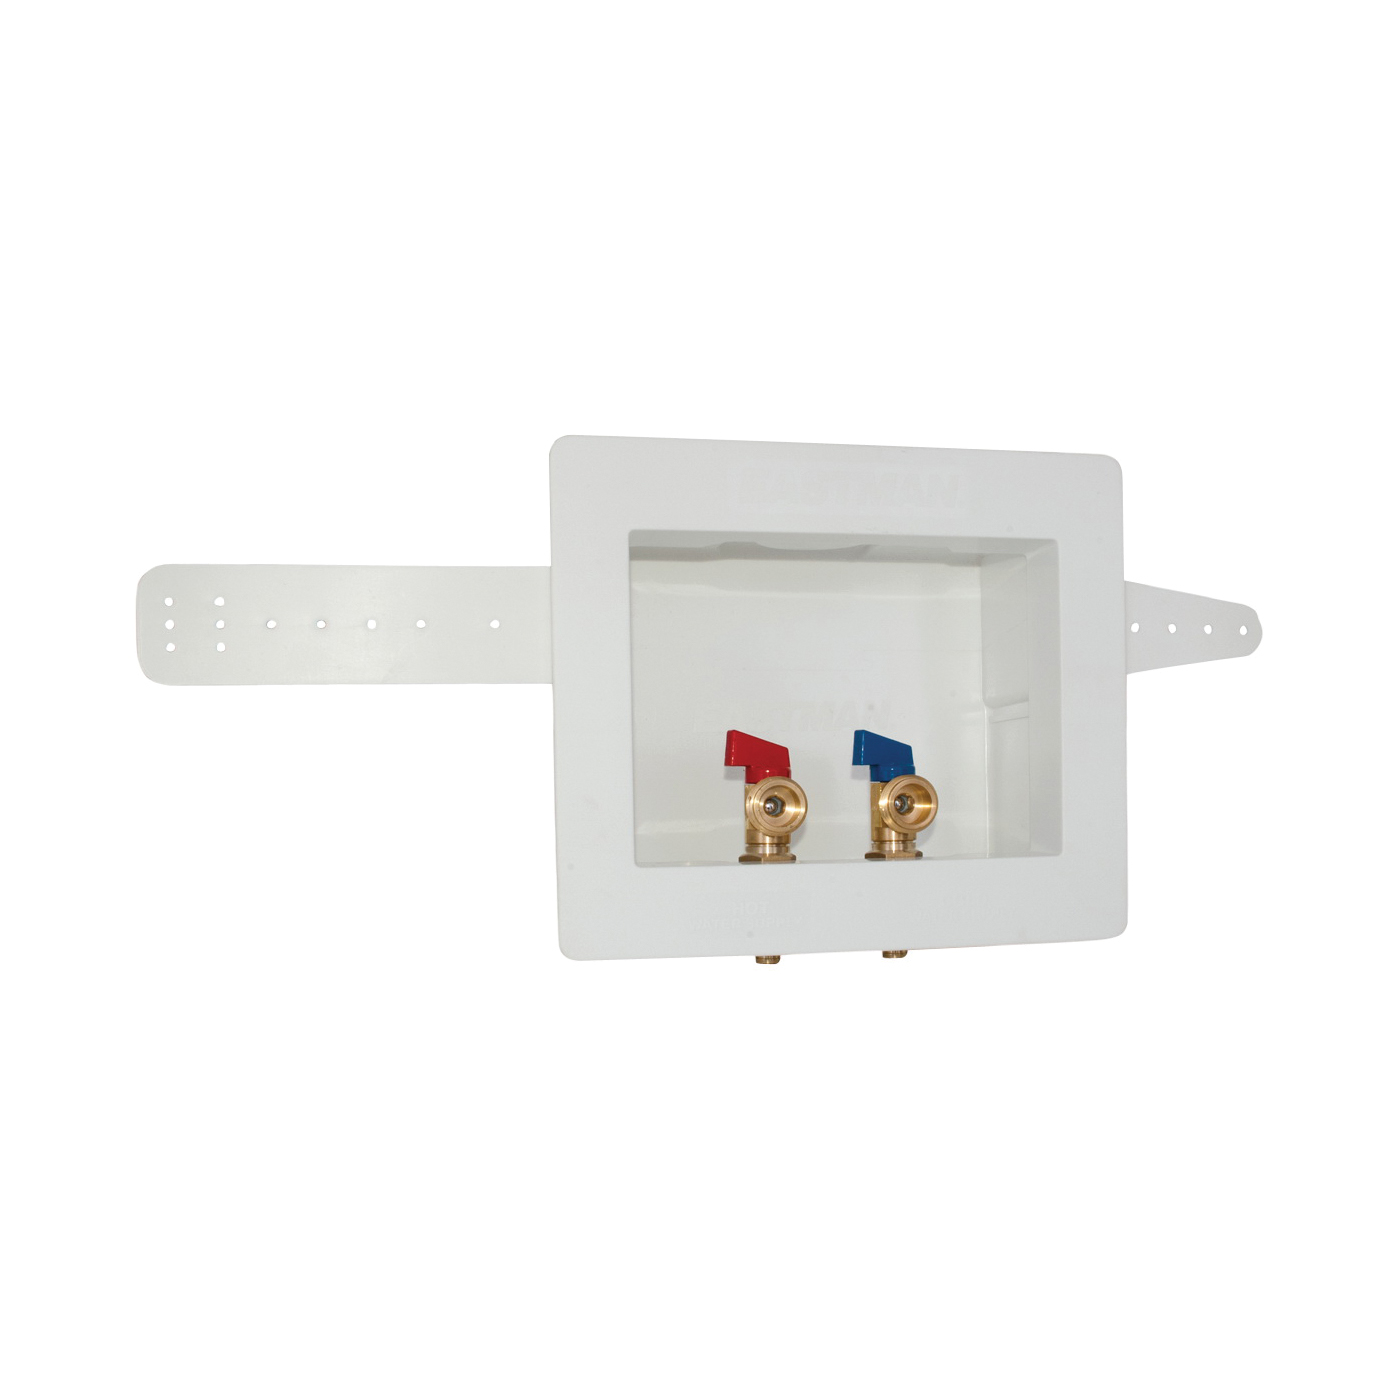 Picture of EASTMAN 60245 Washing Machine Outlet Box, 1/2, 3/4 in Connection, Brass